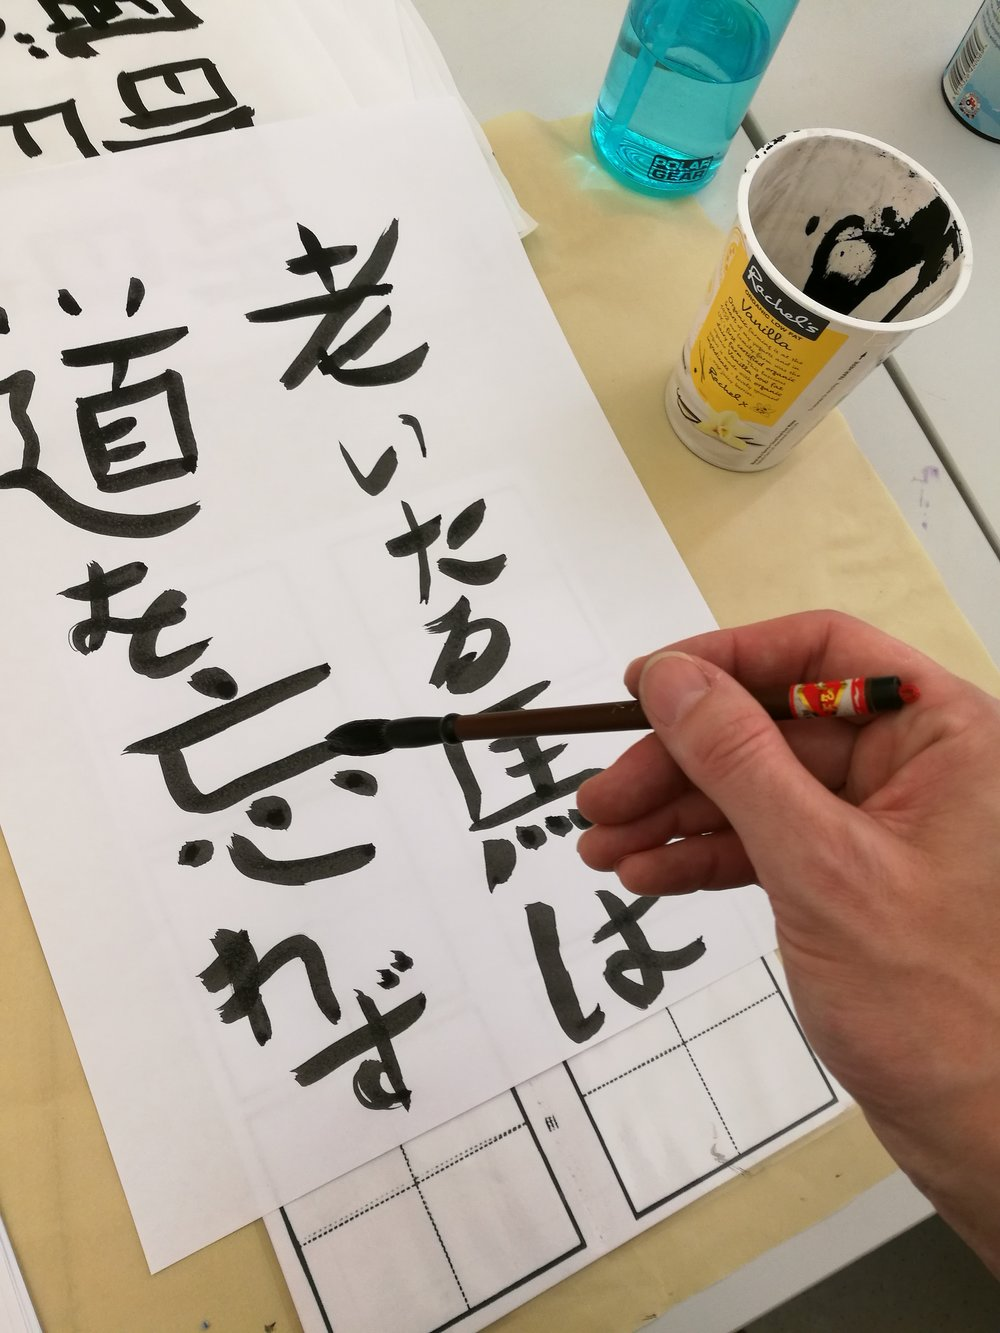 Writing a Japanese proverb